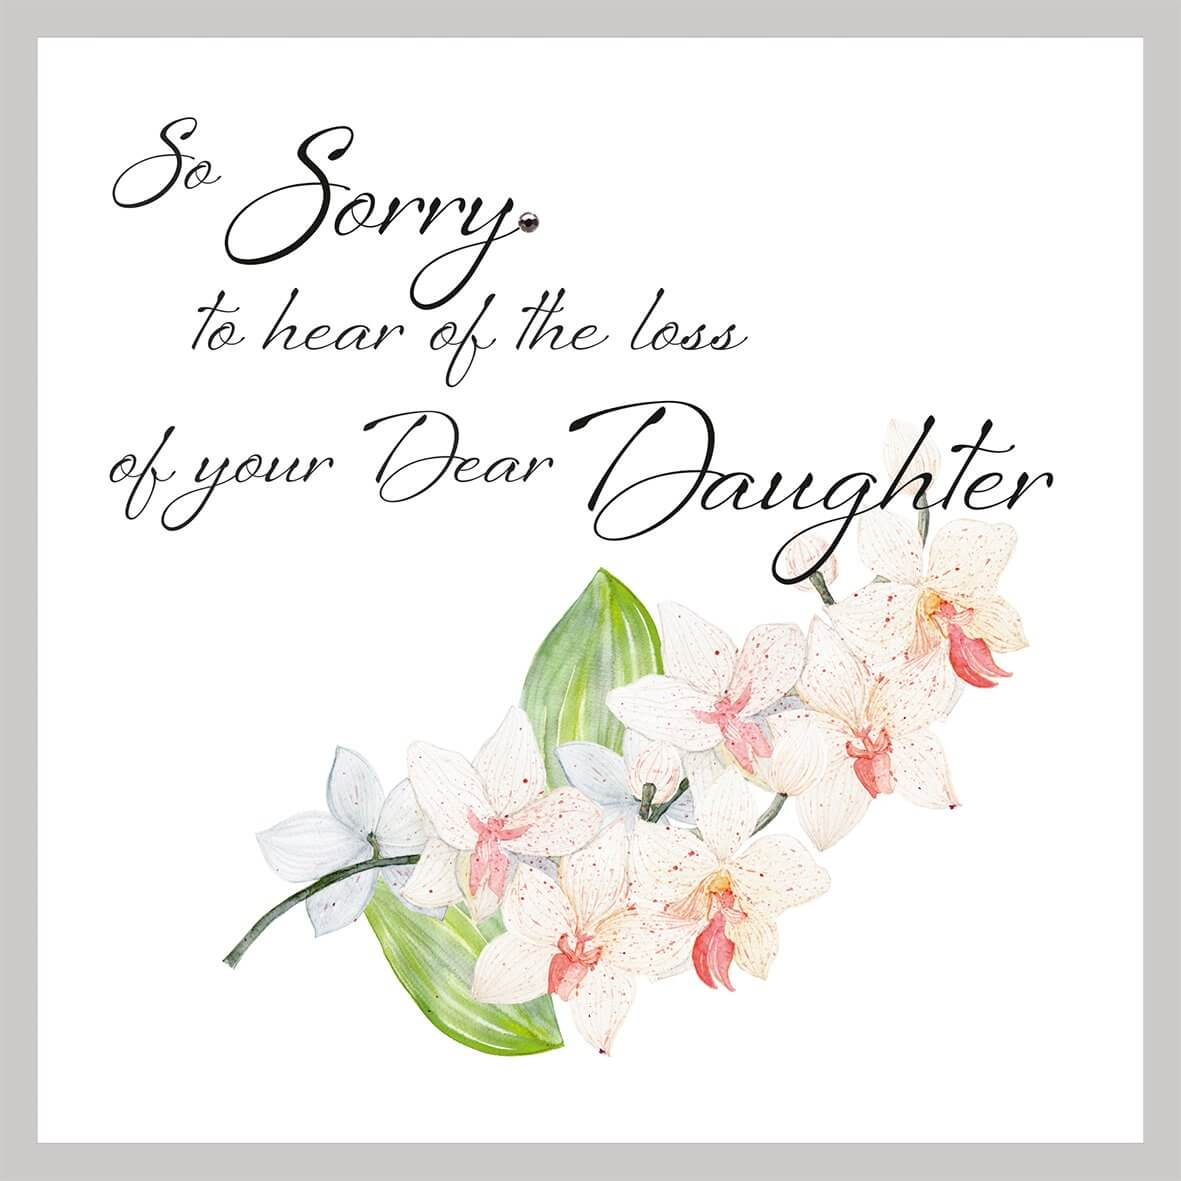 So Sorry To Hear The Loss Of Your Dear Daughter